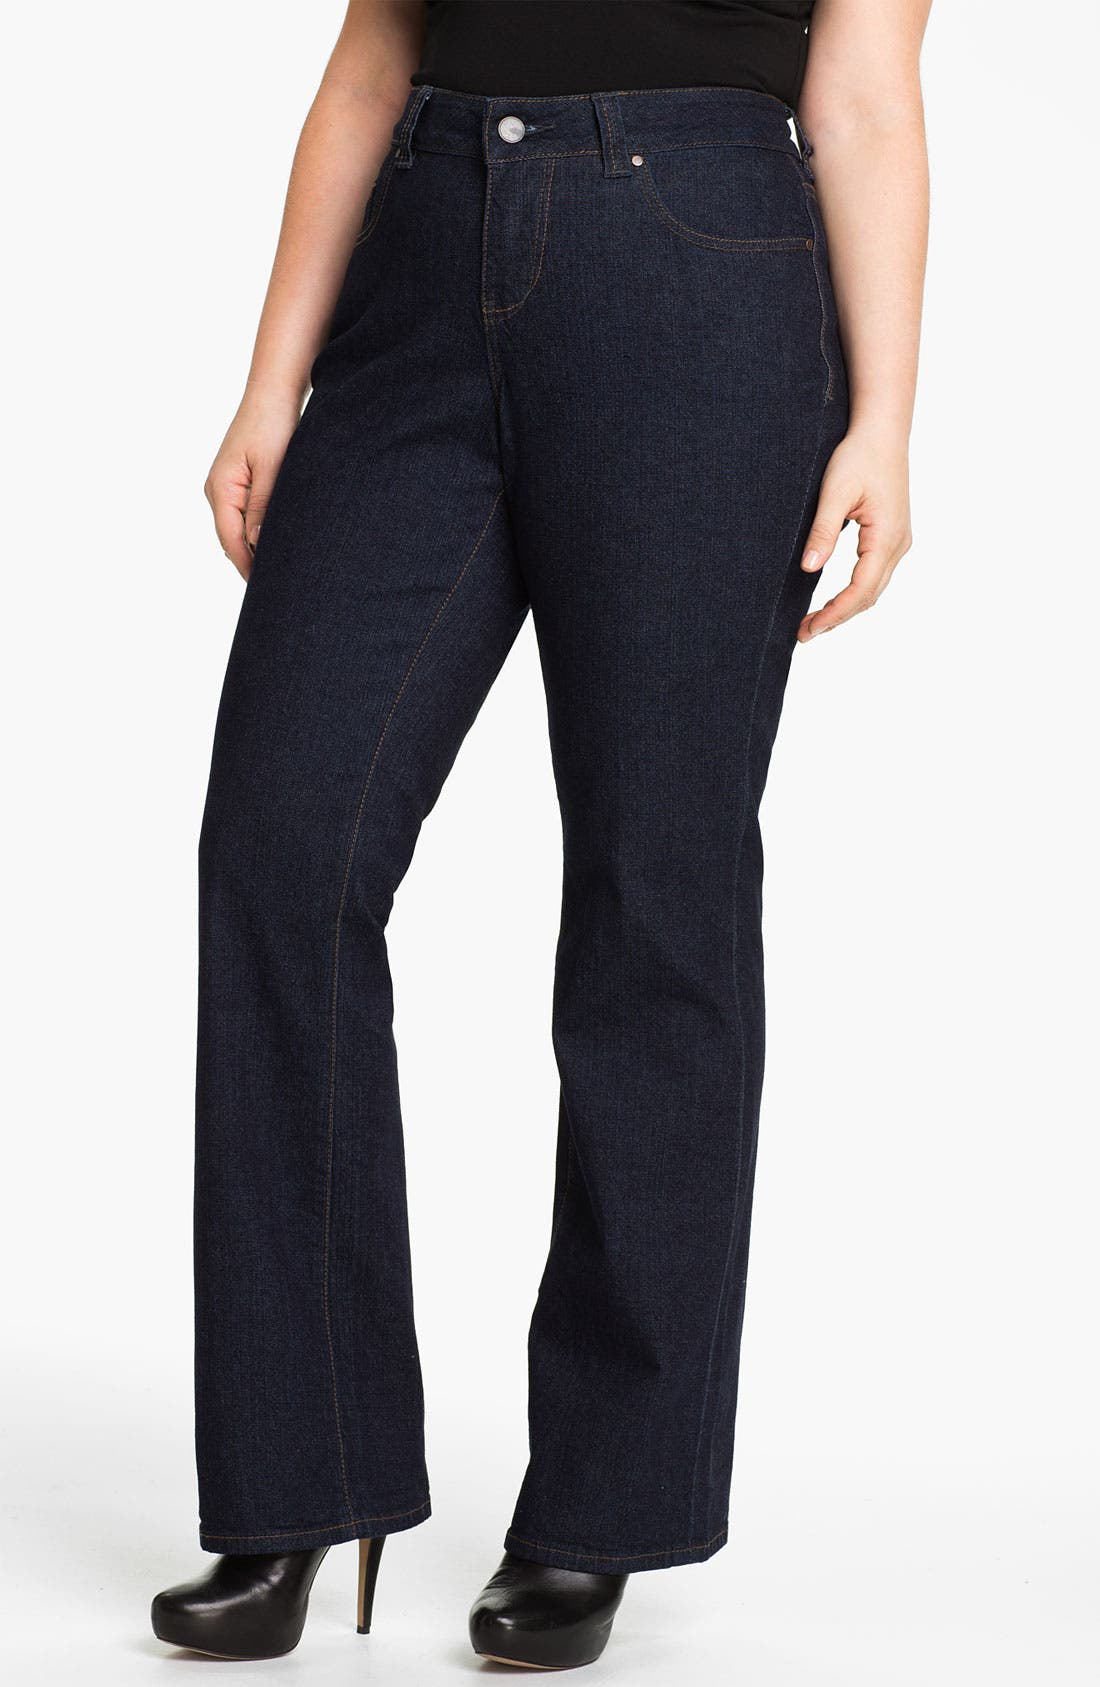 Main Image - Jag Jeans 'Foster' Bootcut Jeans (Plus Size)